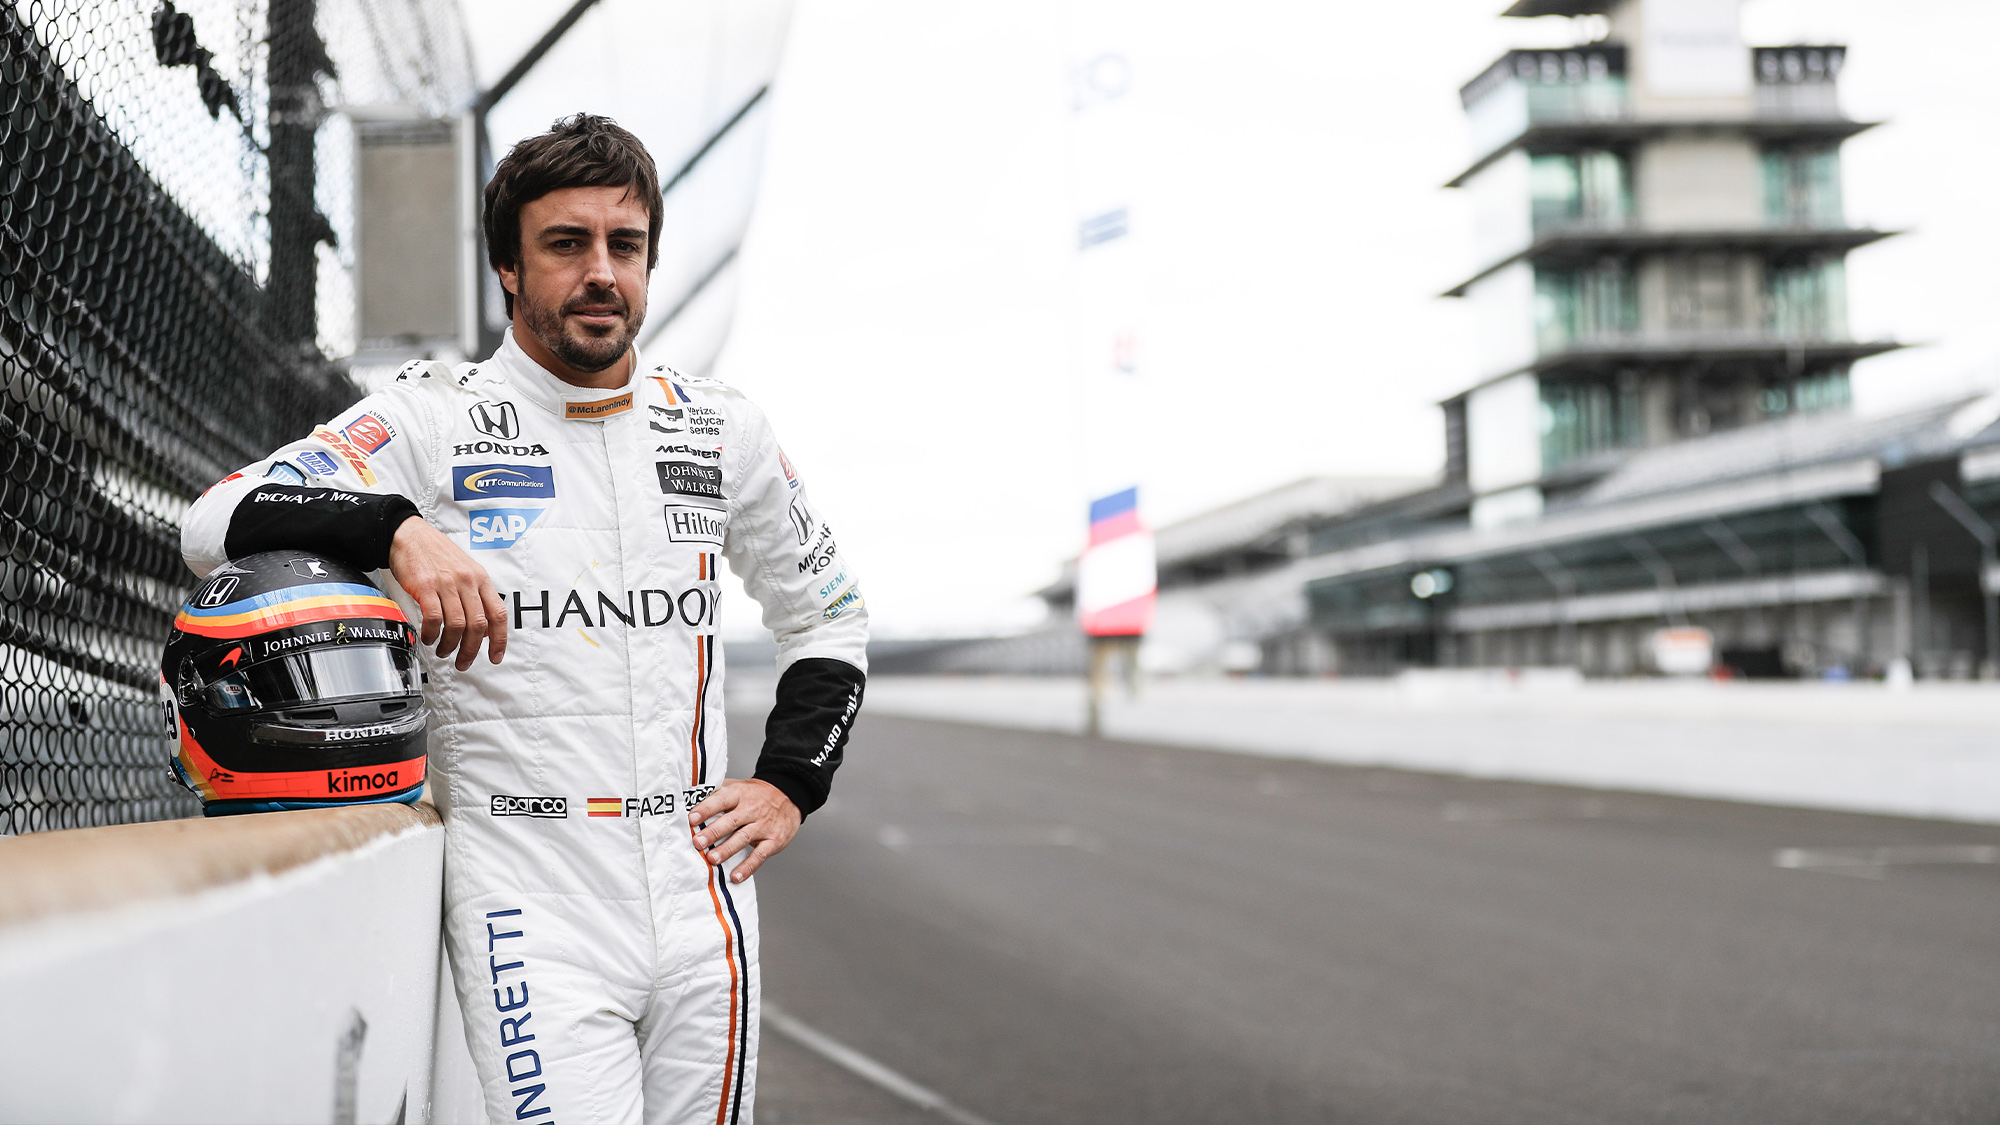 Alonso: 2020 Indy 500 the last chance to gain triple crown for two years